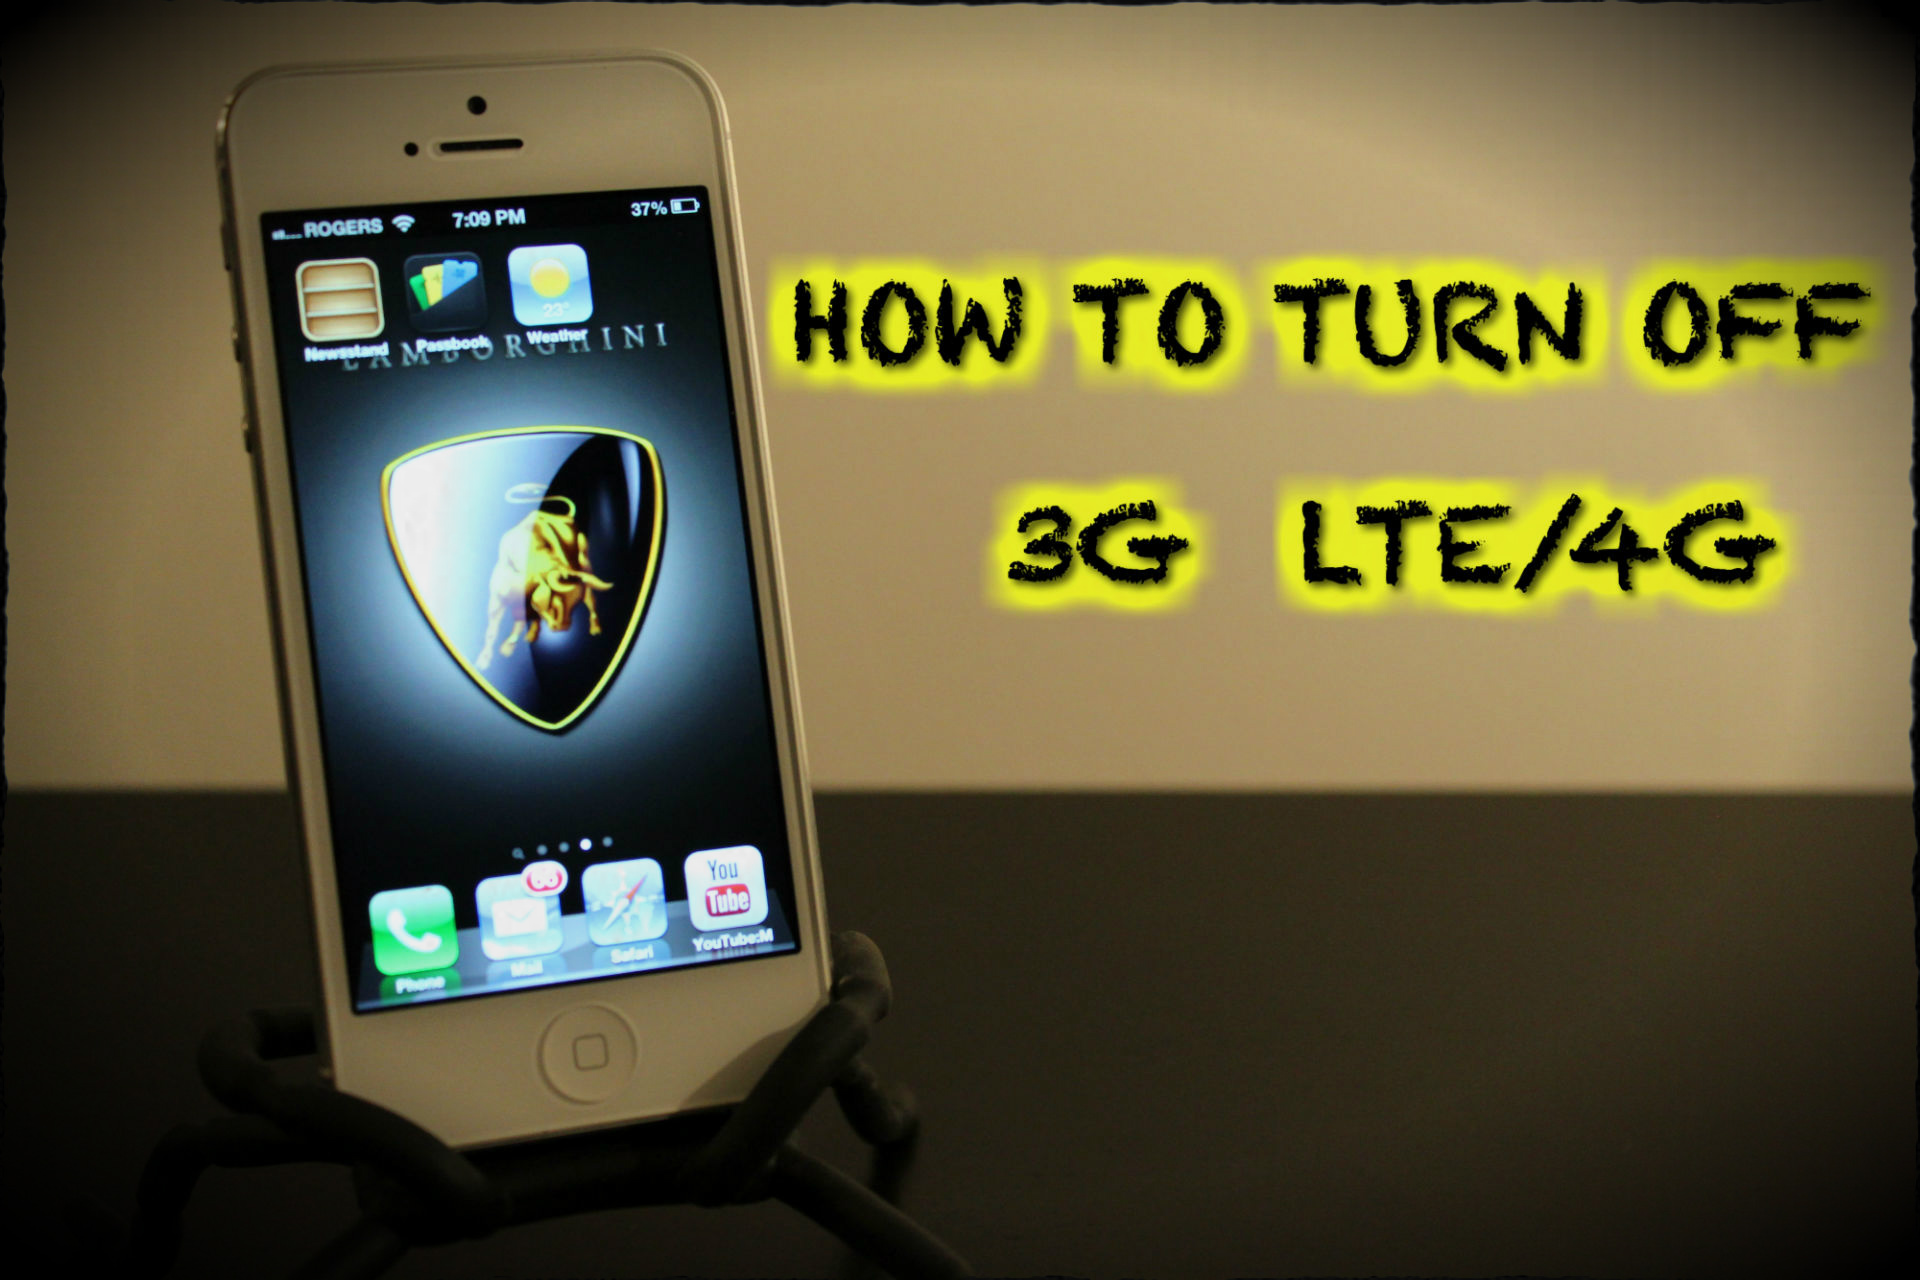 How To Turn Off 3G, LTE, 4G Data iPhone 5